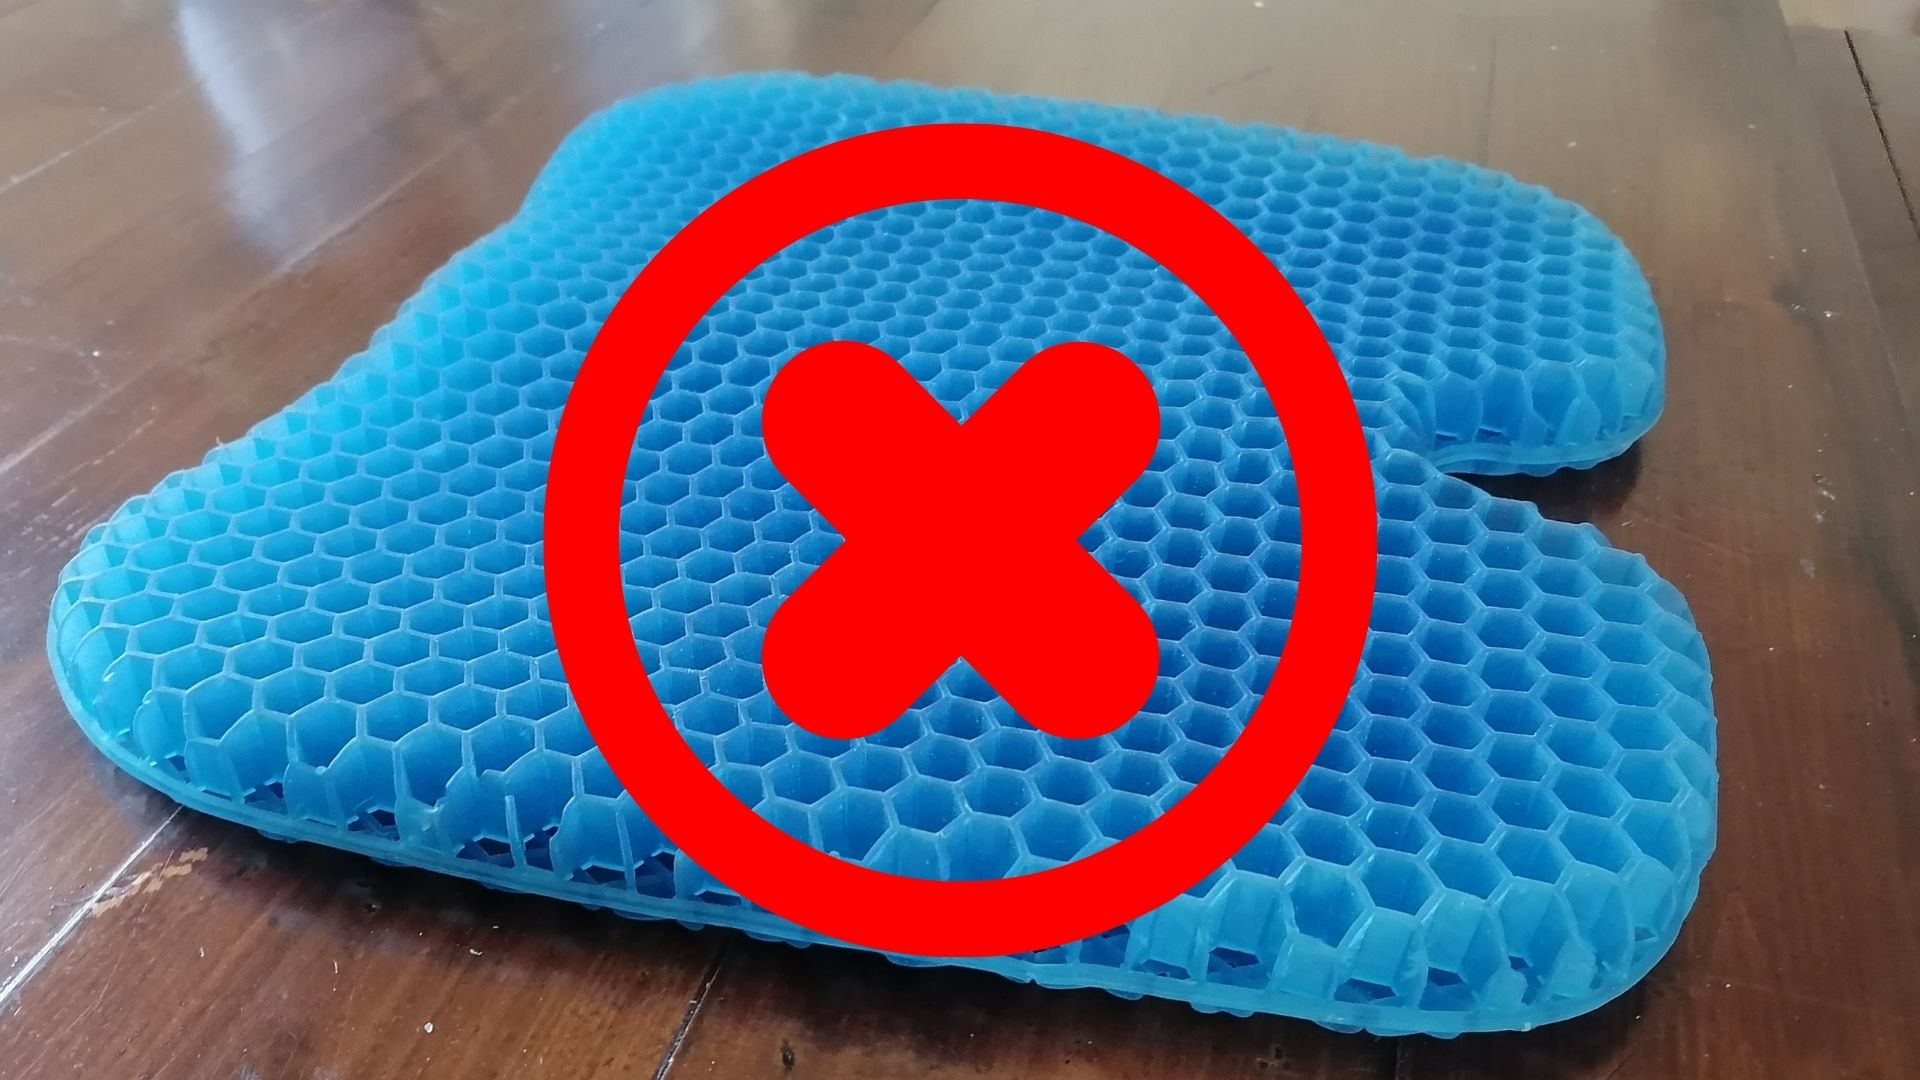 gel seat cushion with red cross on top of it